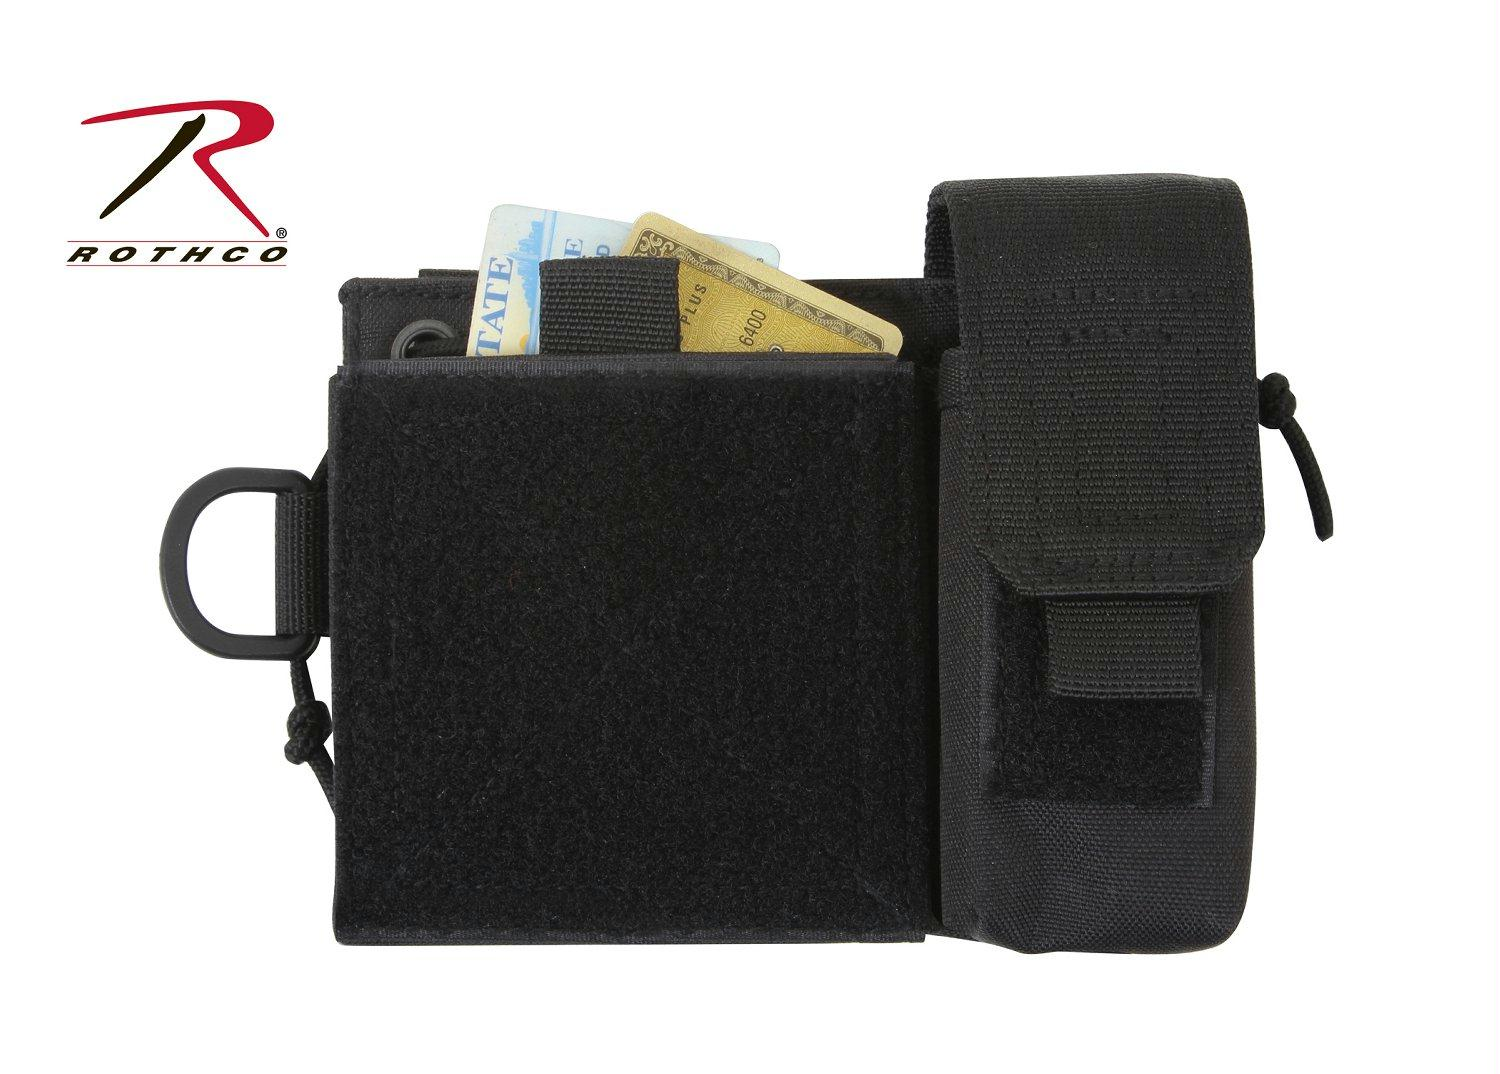 Rothco MOLLE Administrative Pouch - Black